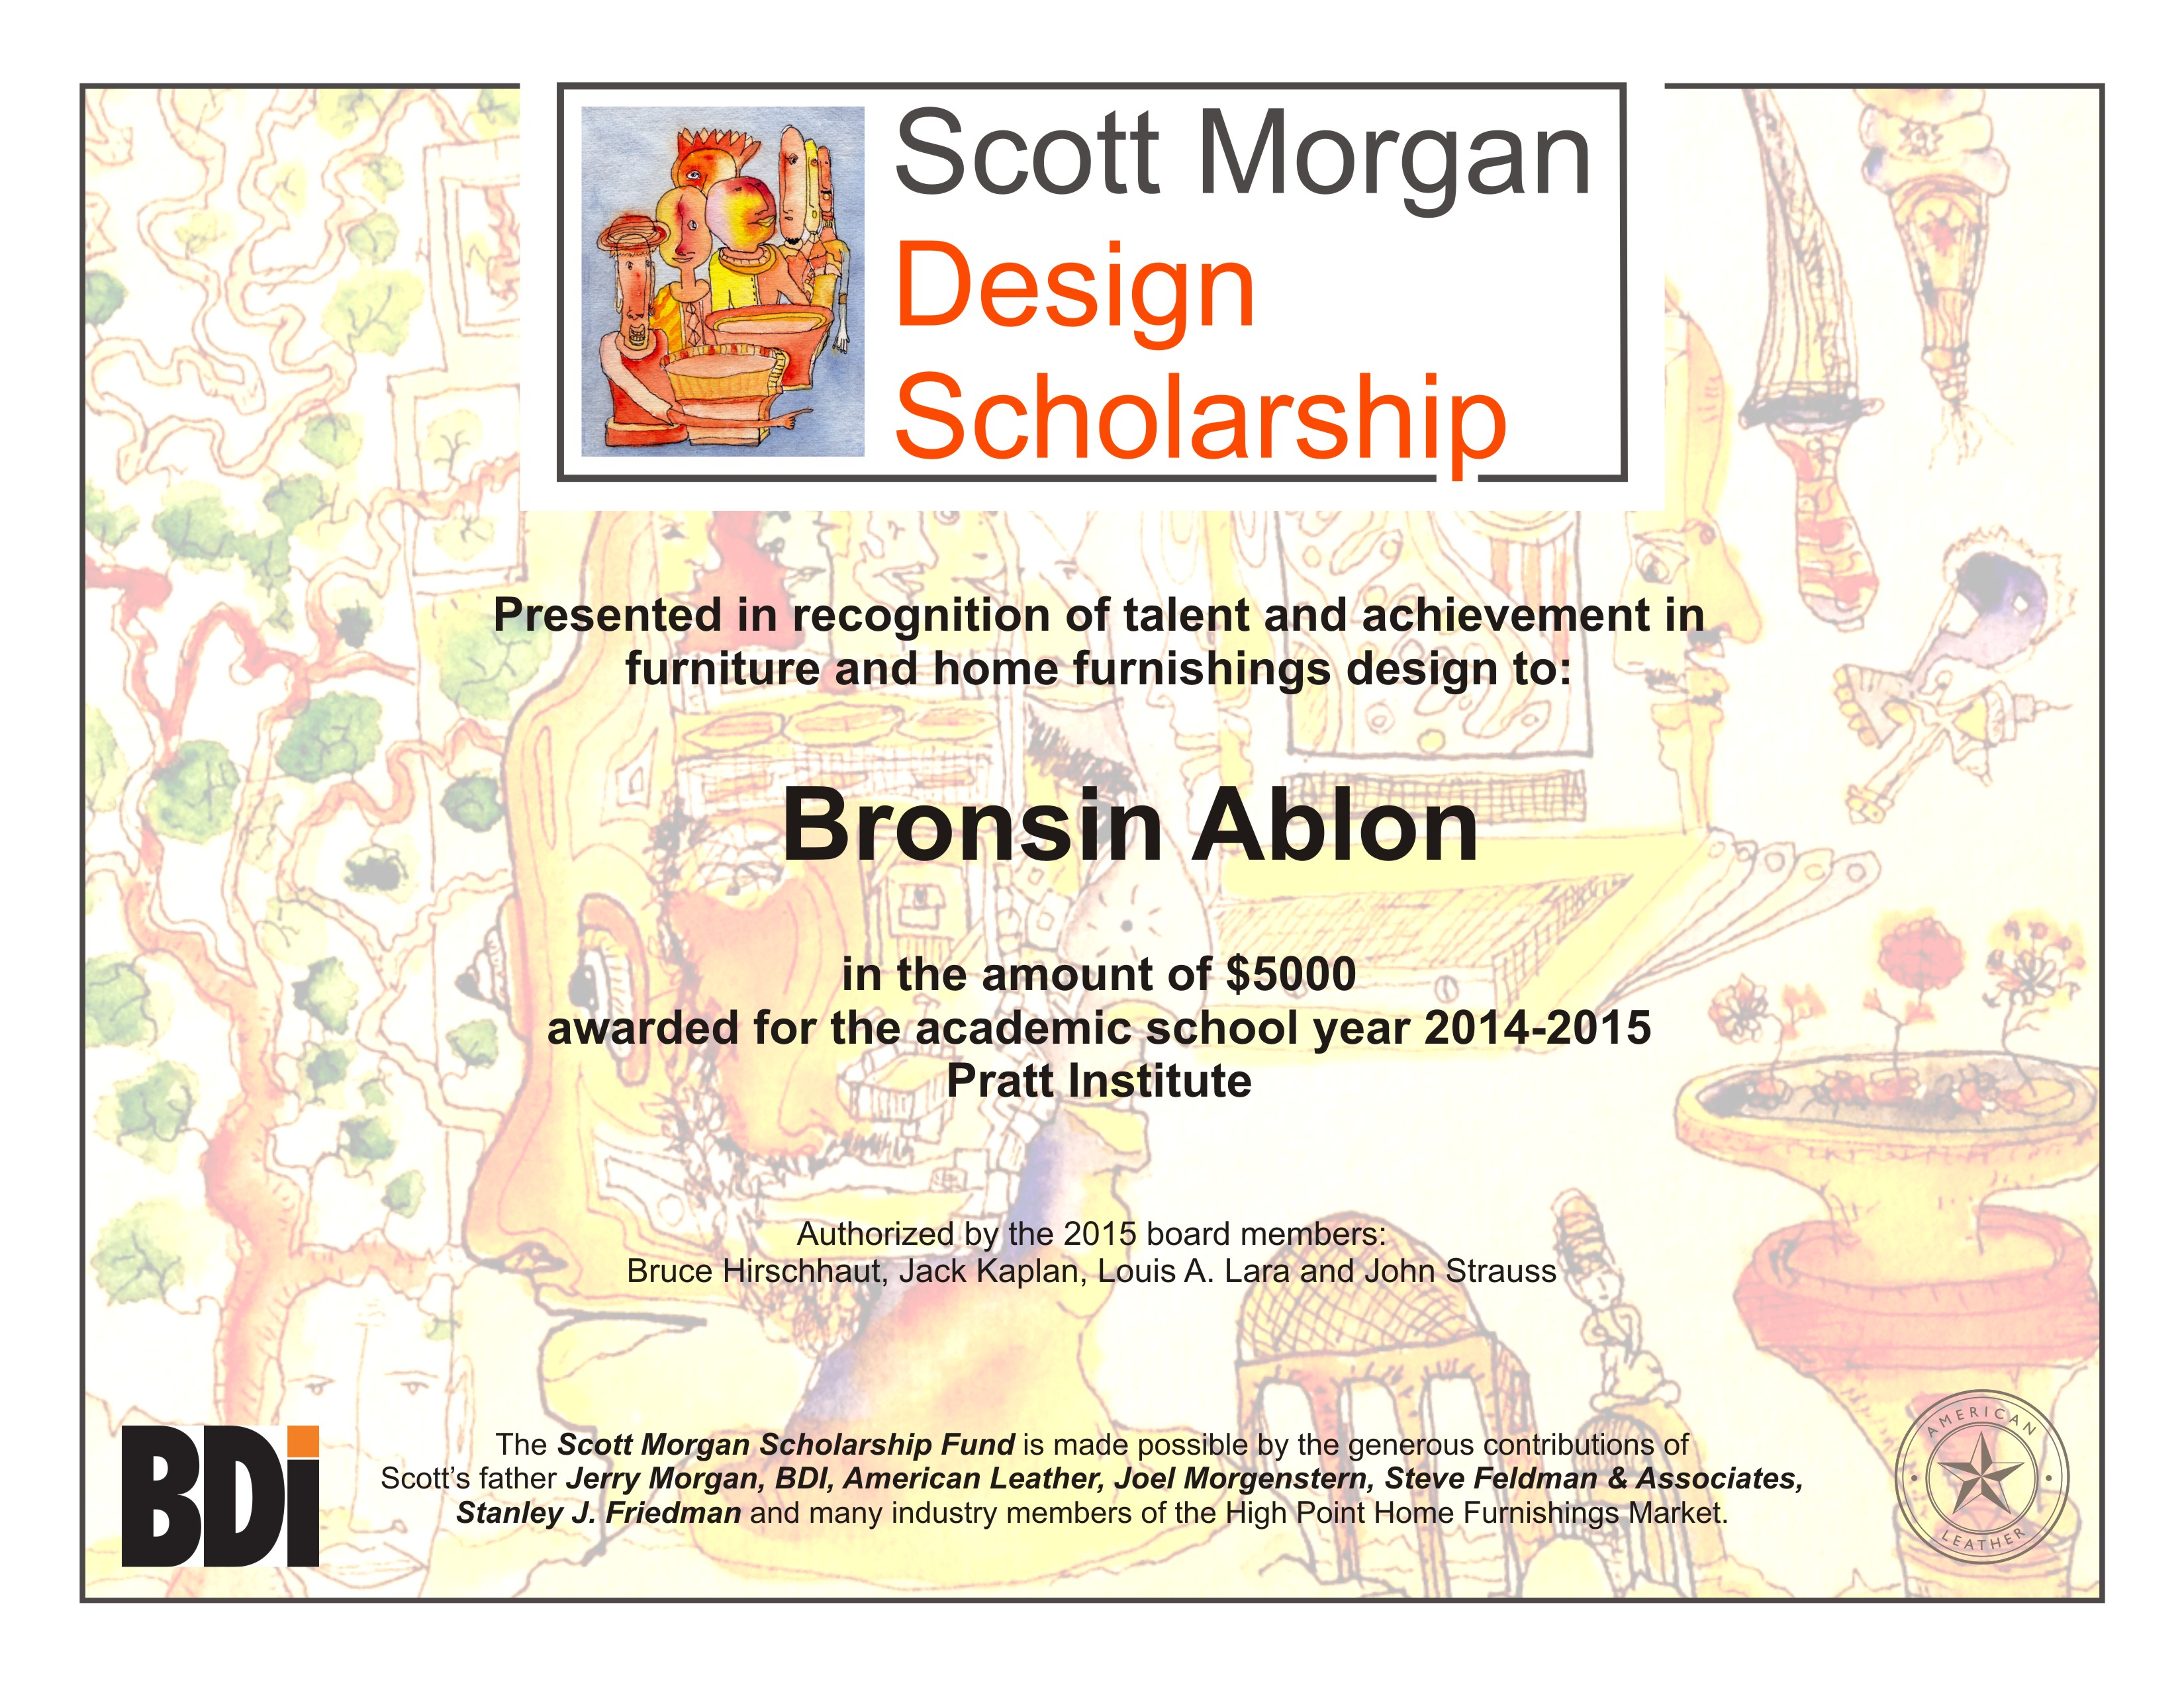 First design scholarship awarded in scotts name going to goa xflitez Gallery